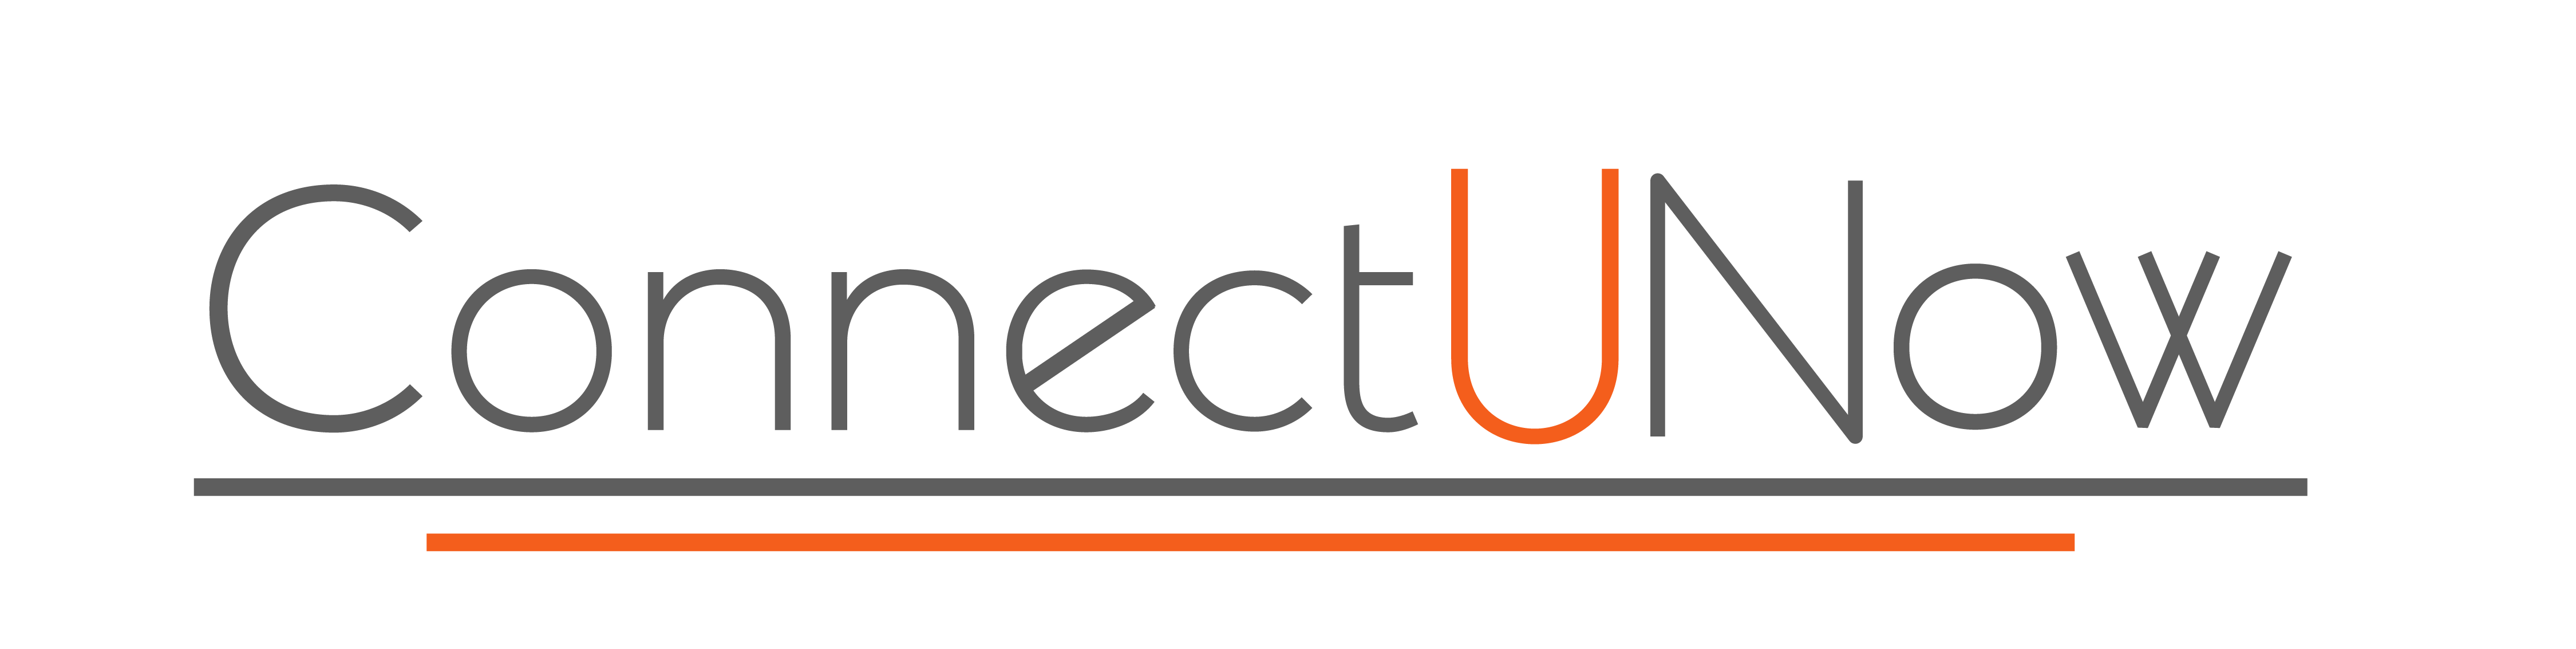 ConnectUNow